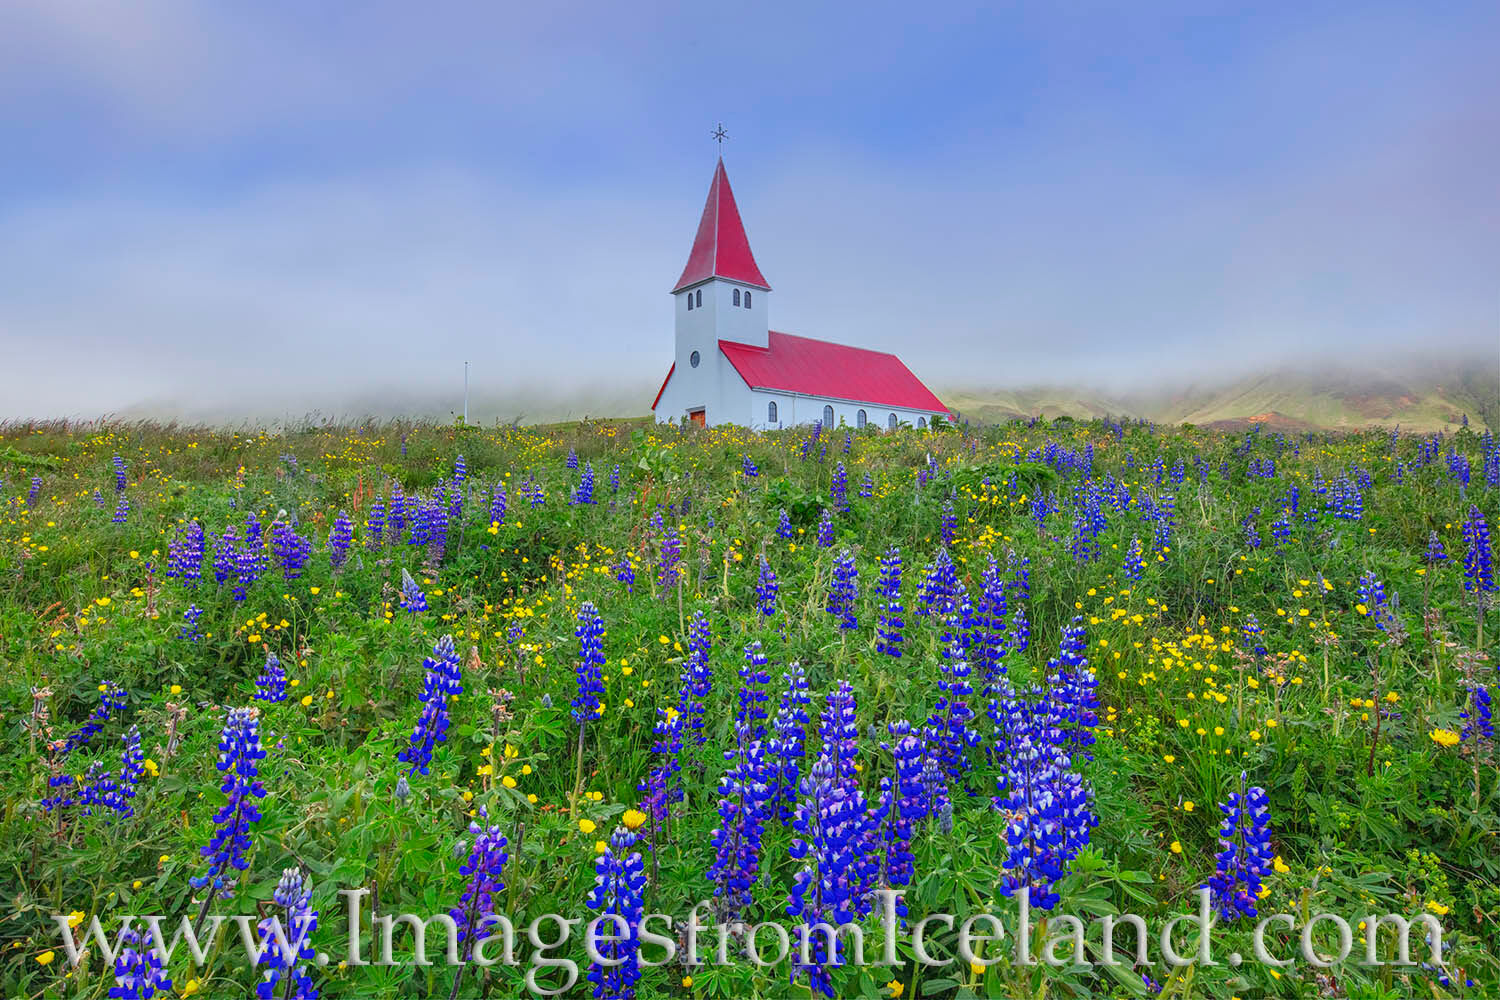 Built in 1929, Reyniskirkja is a little church that sits on a hill overlooking the small village of Vik. In the distance are...